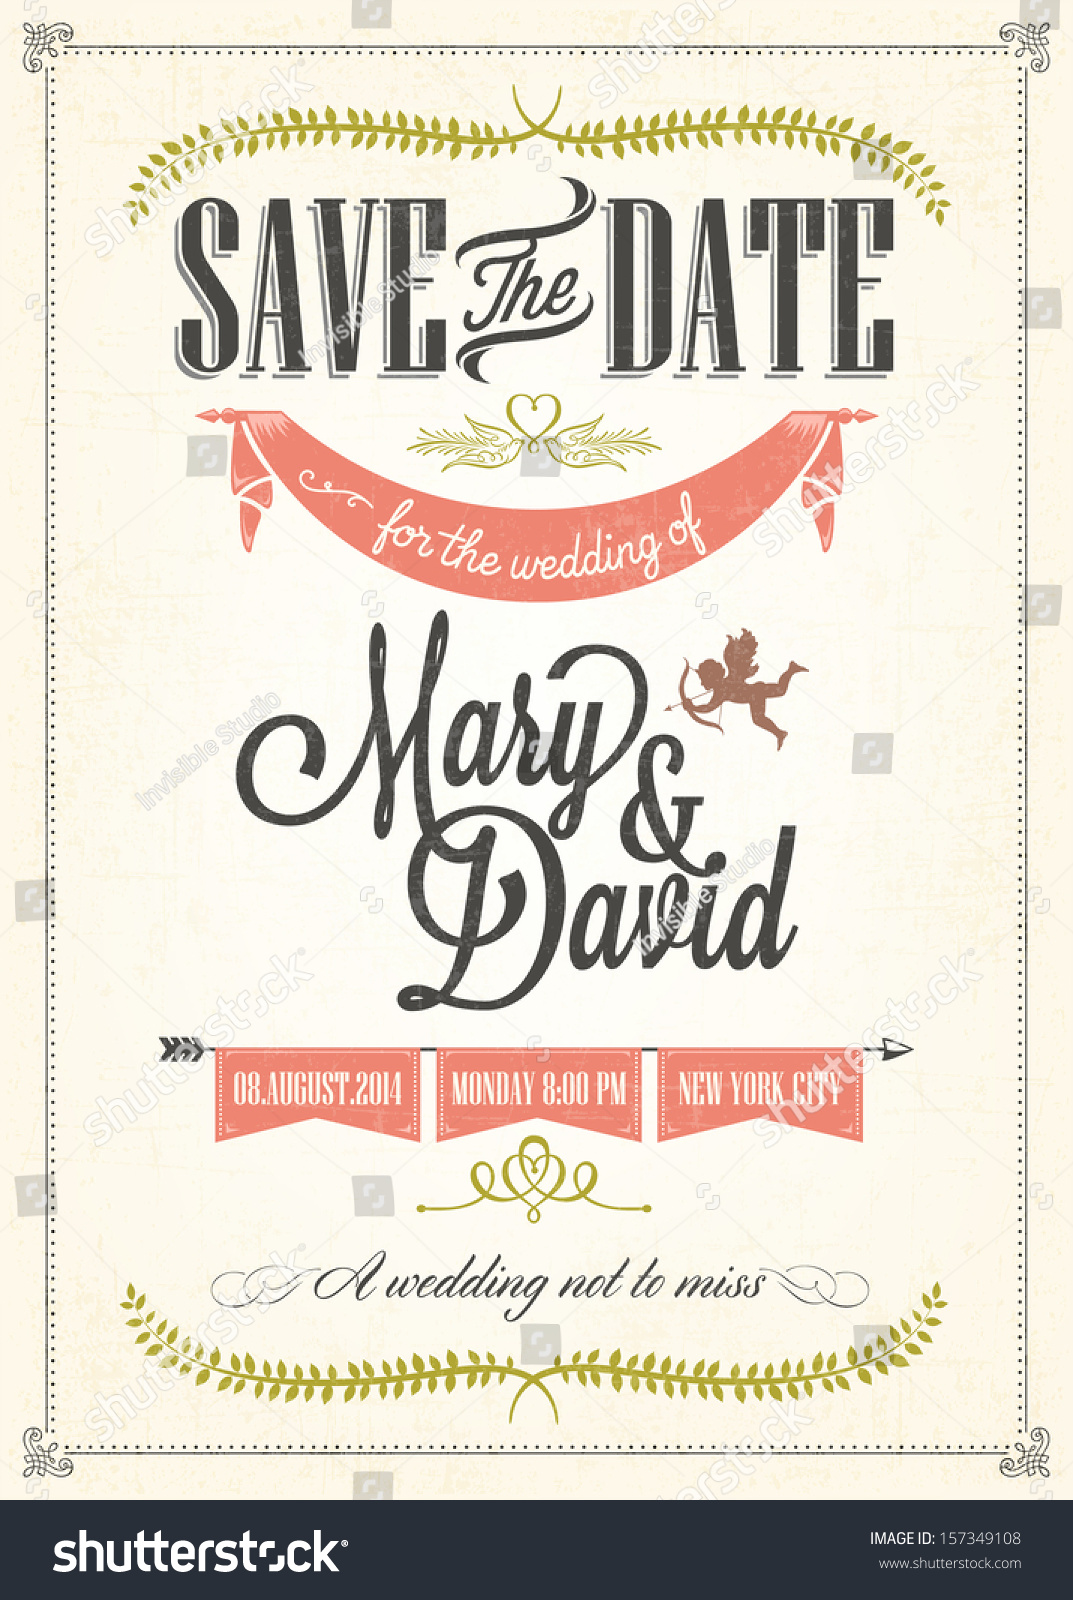 Save Date Wedding Invitation Card Vector 157349108 – Save the Date Wedding Invite